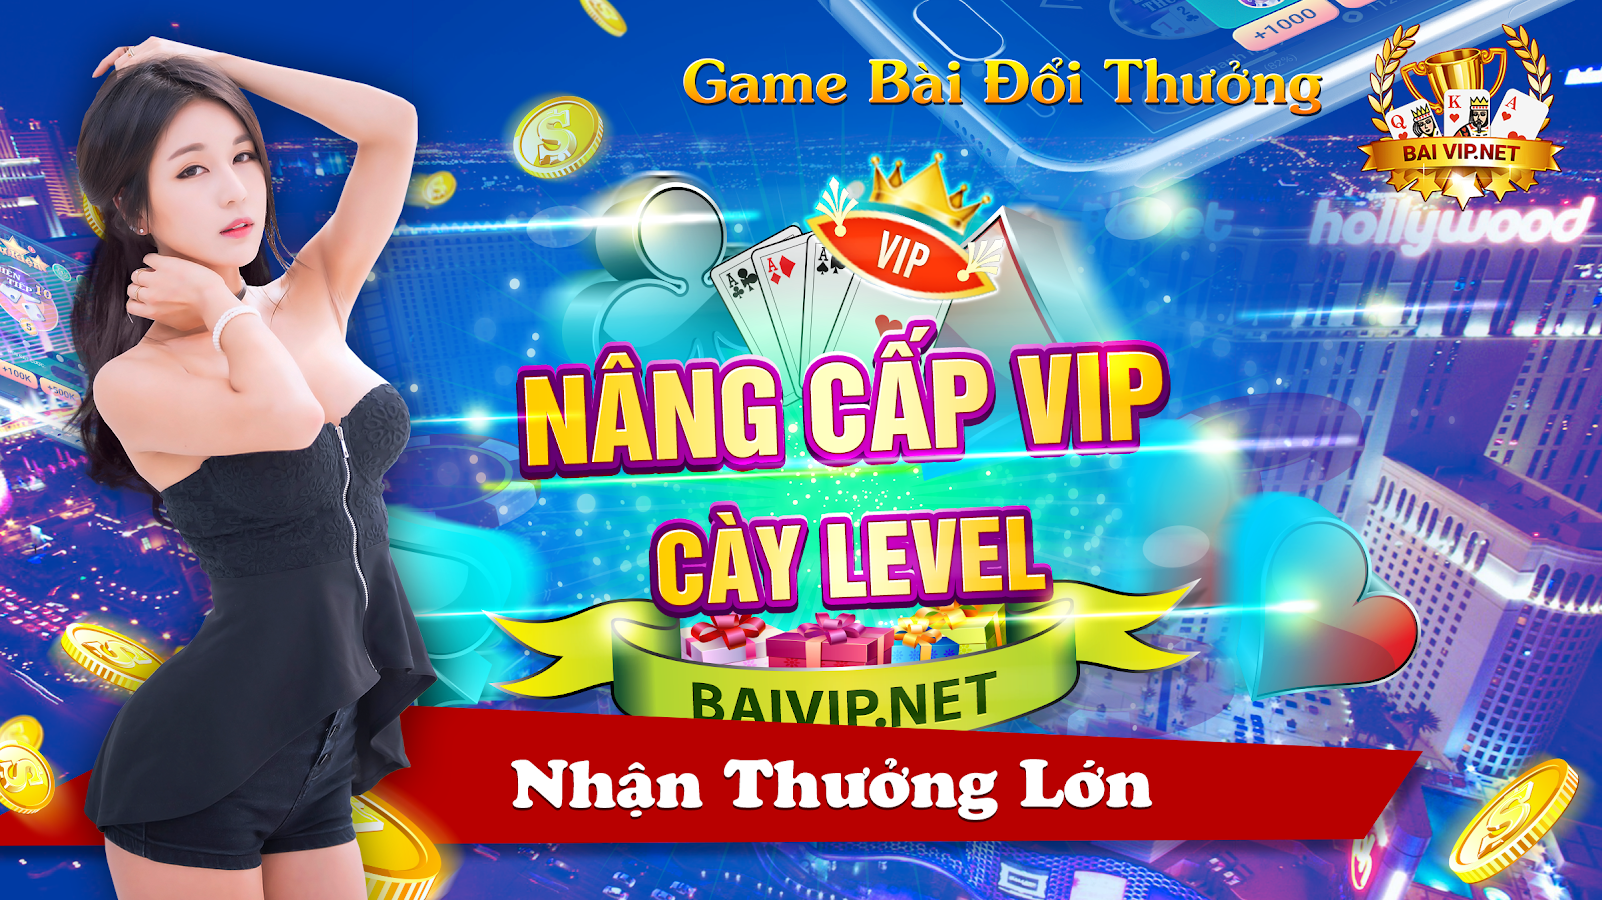 Game Bài Vip Online Screenshot 11